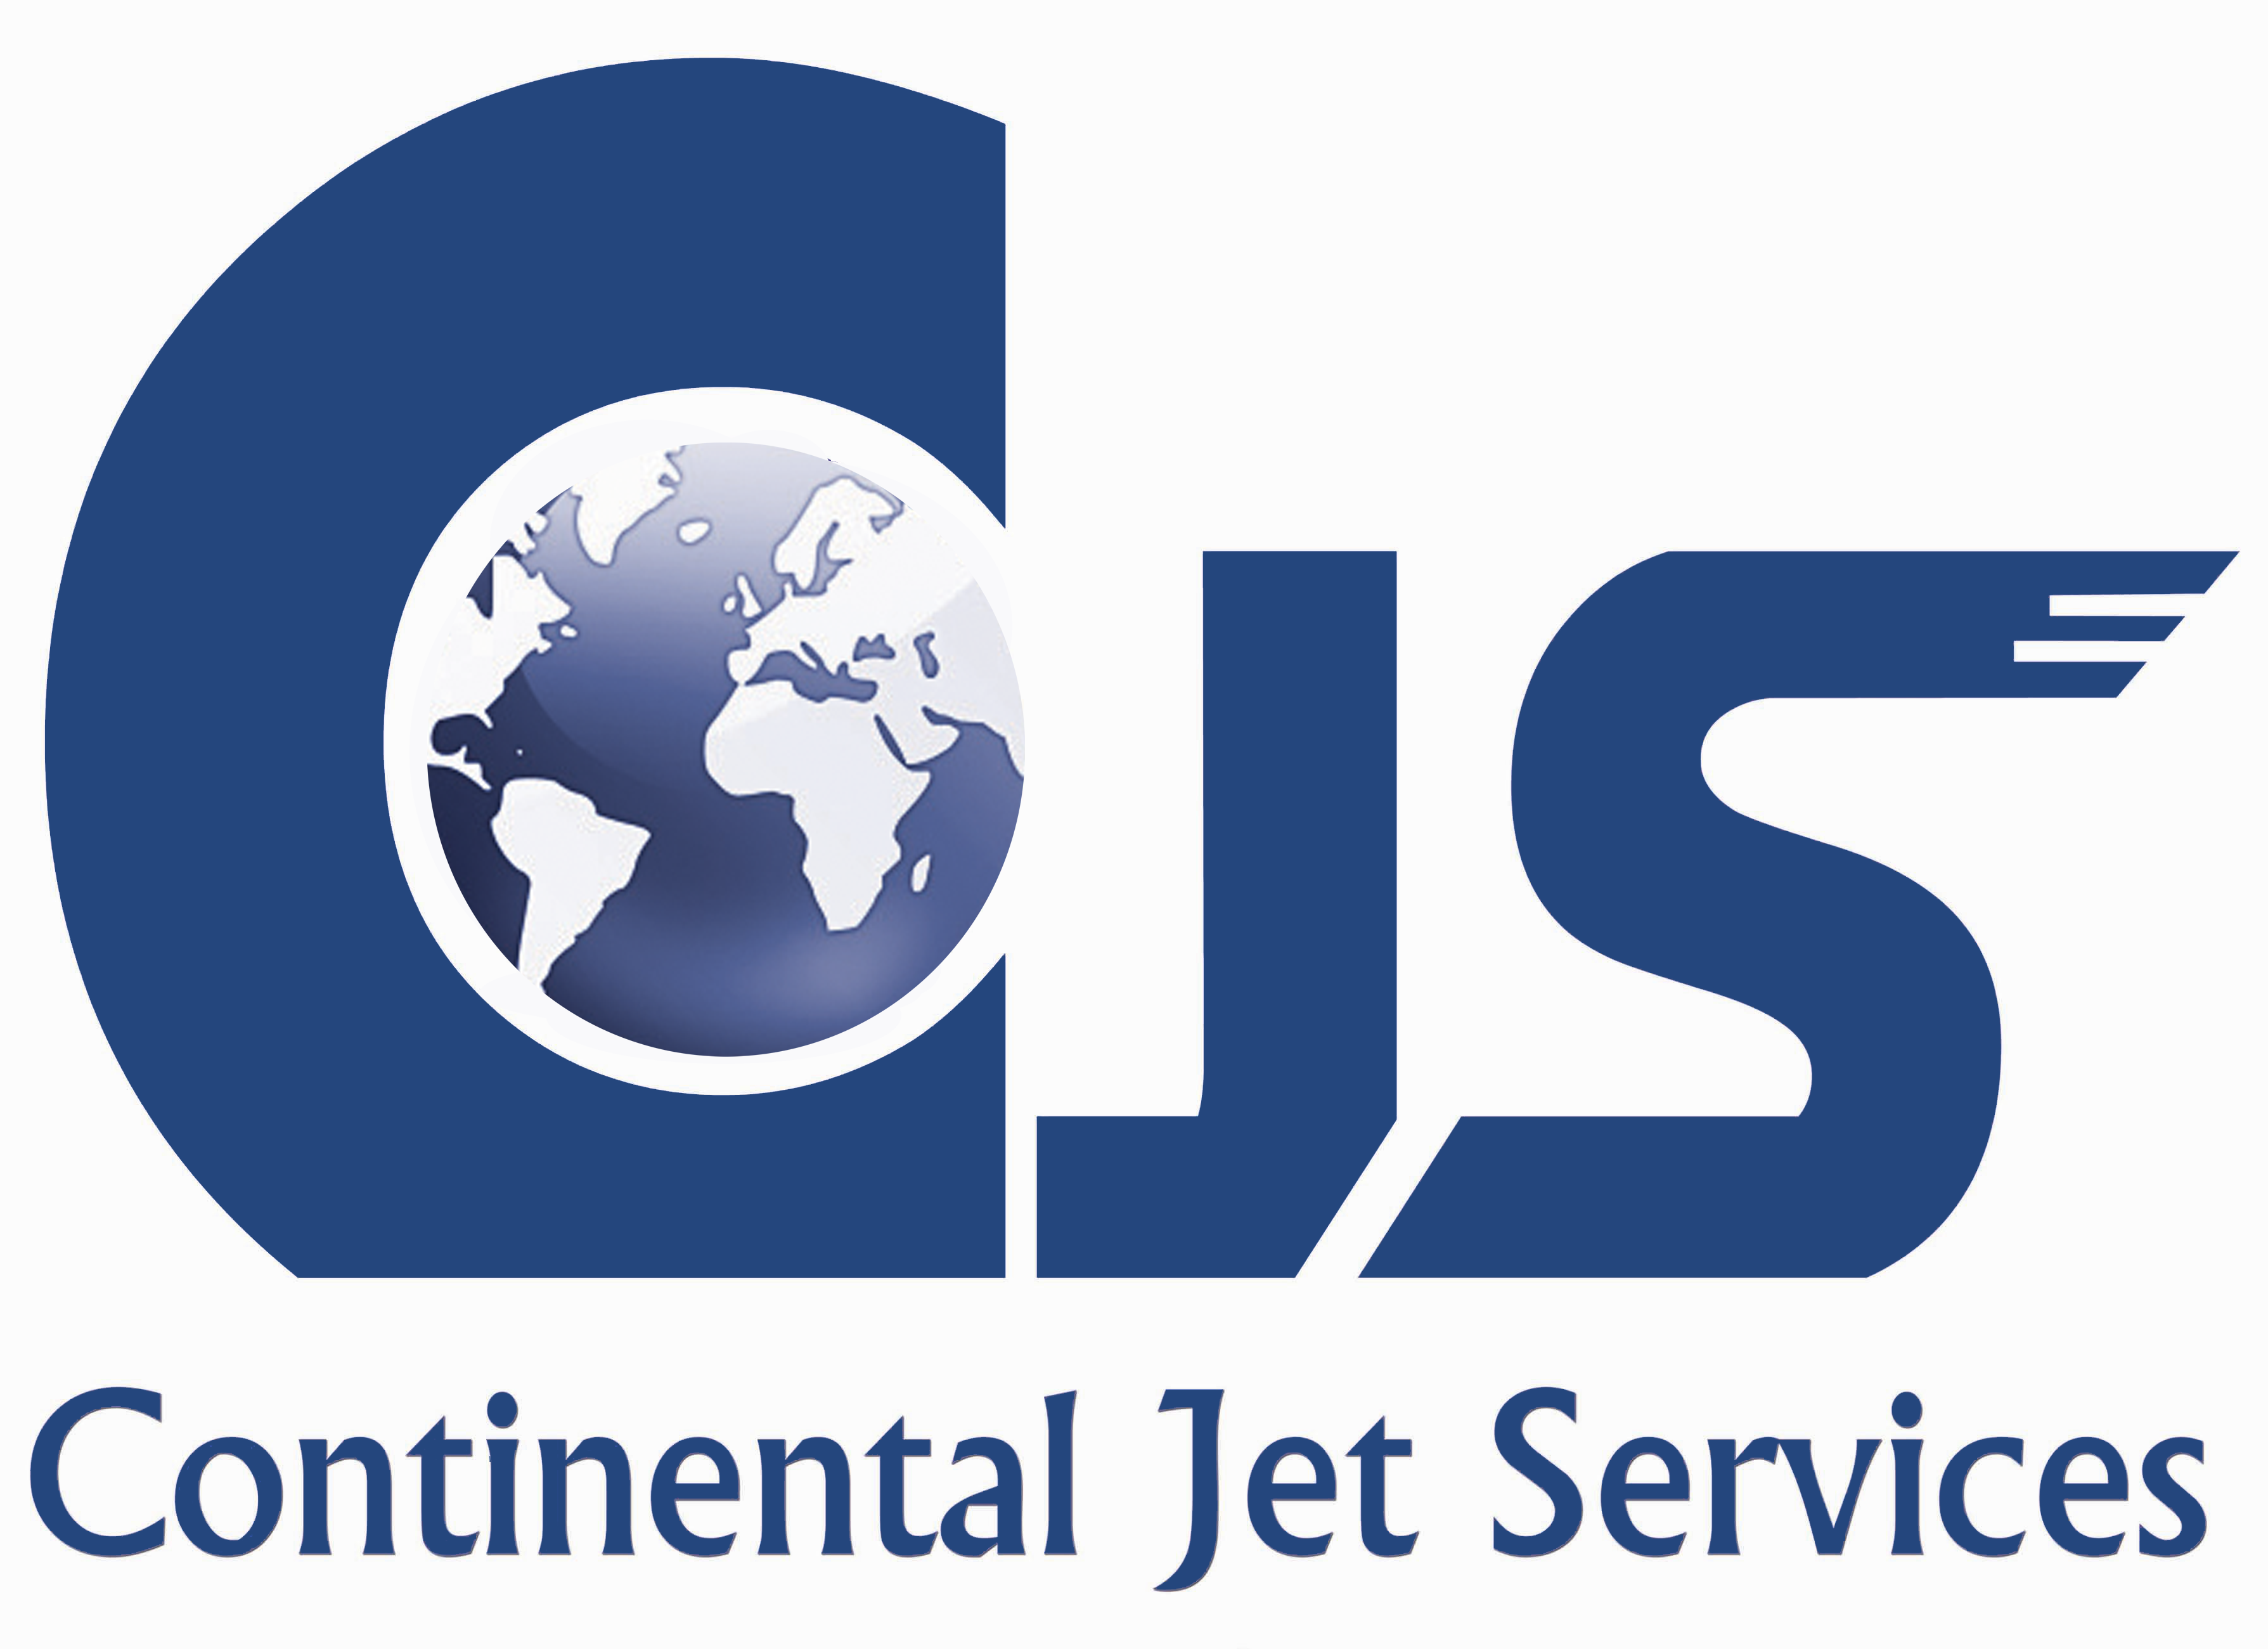 Continental Jet Services